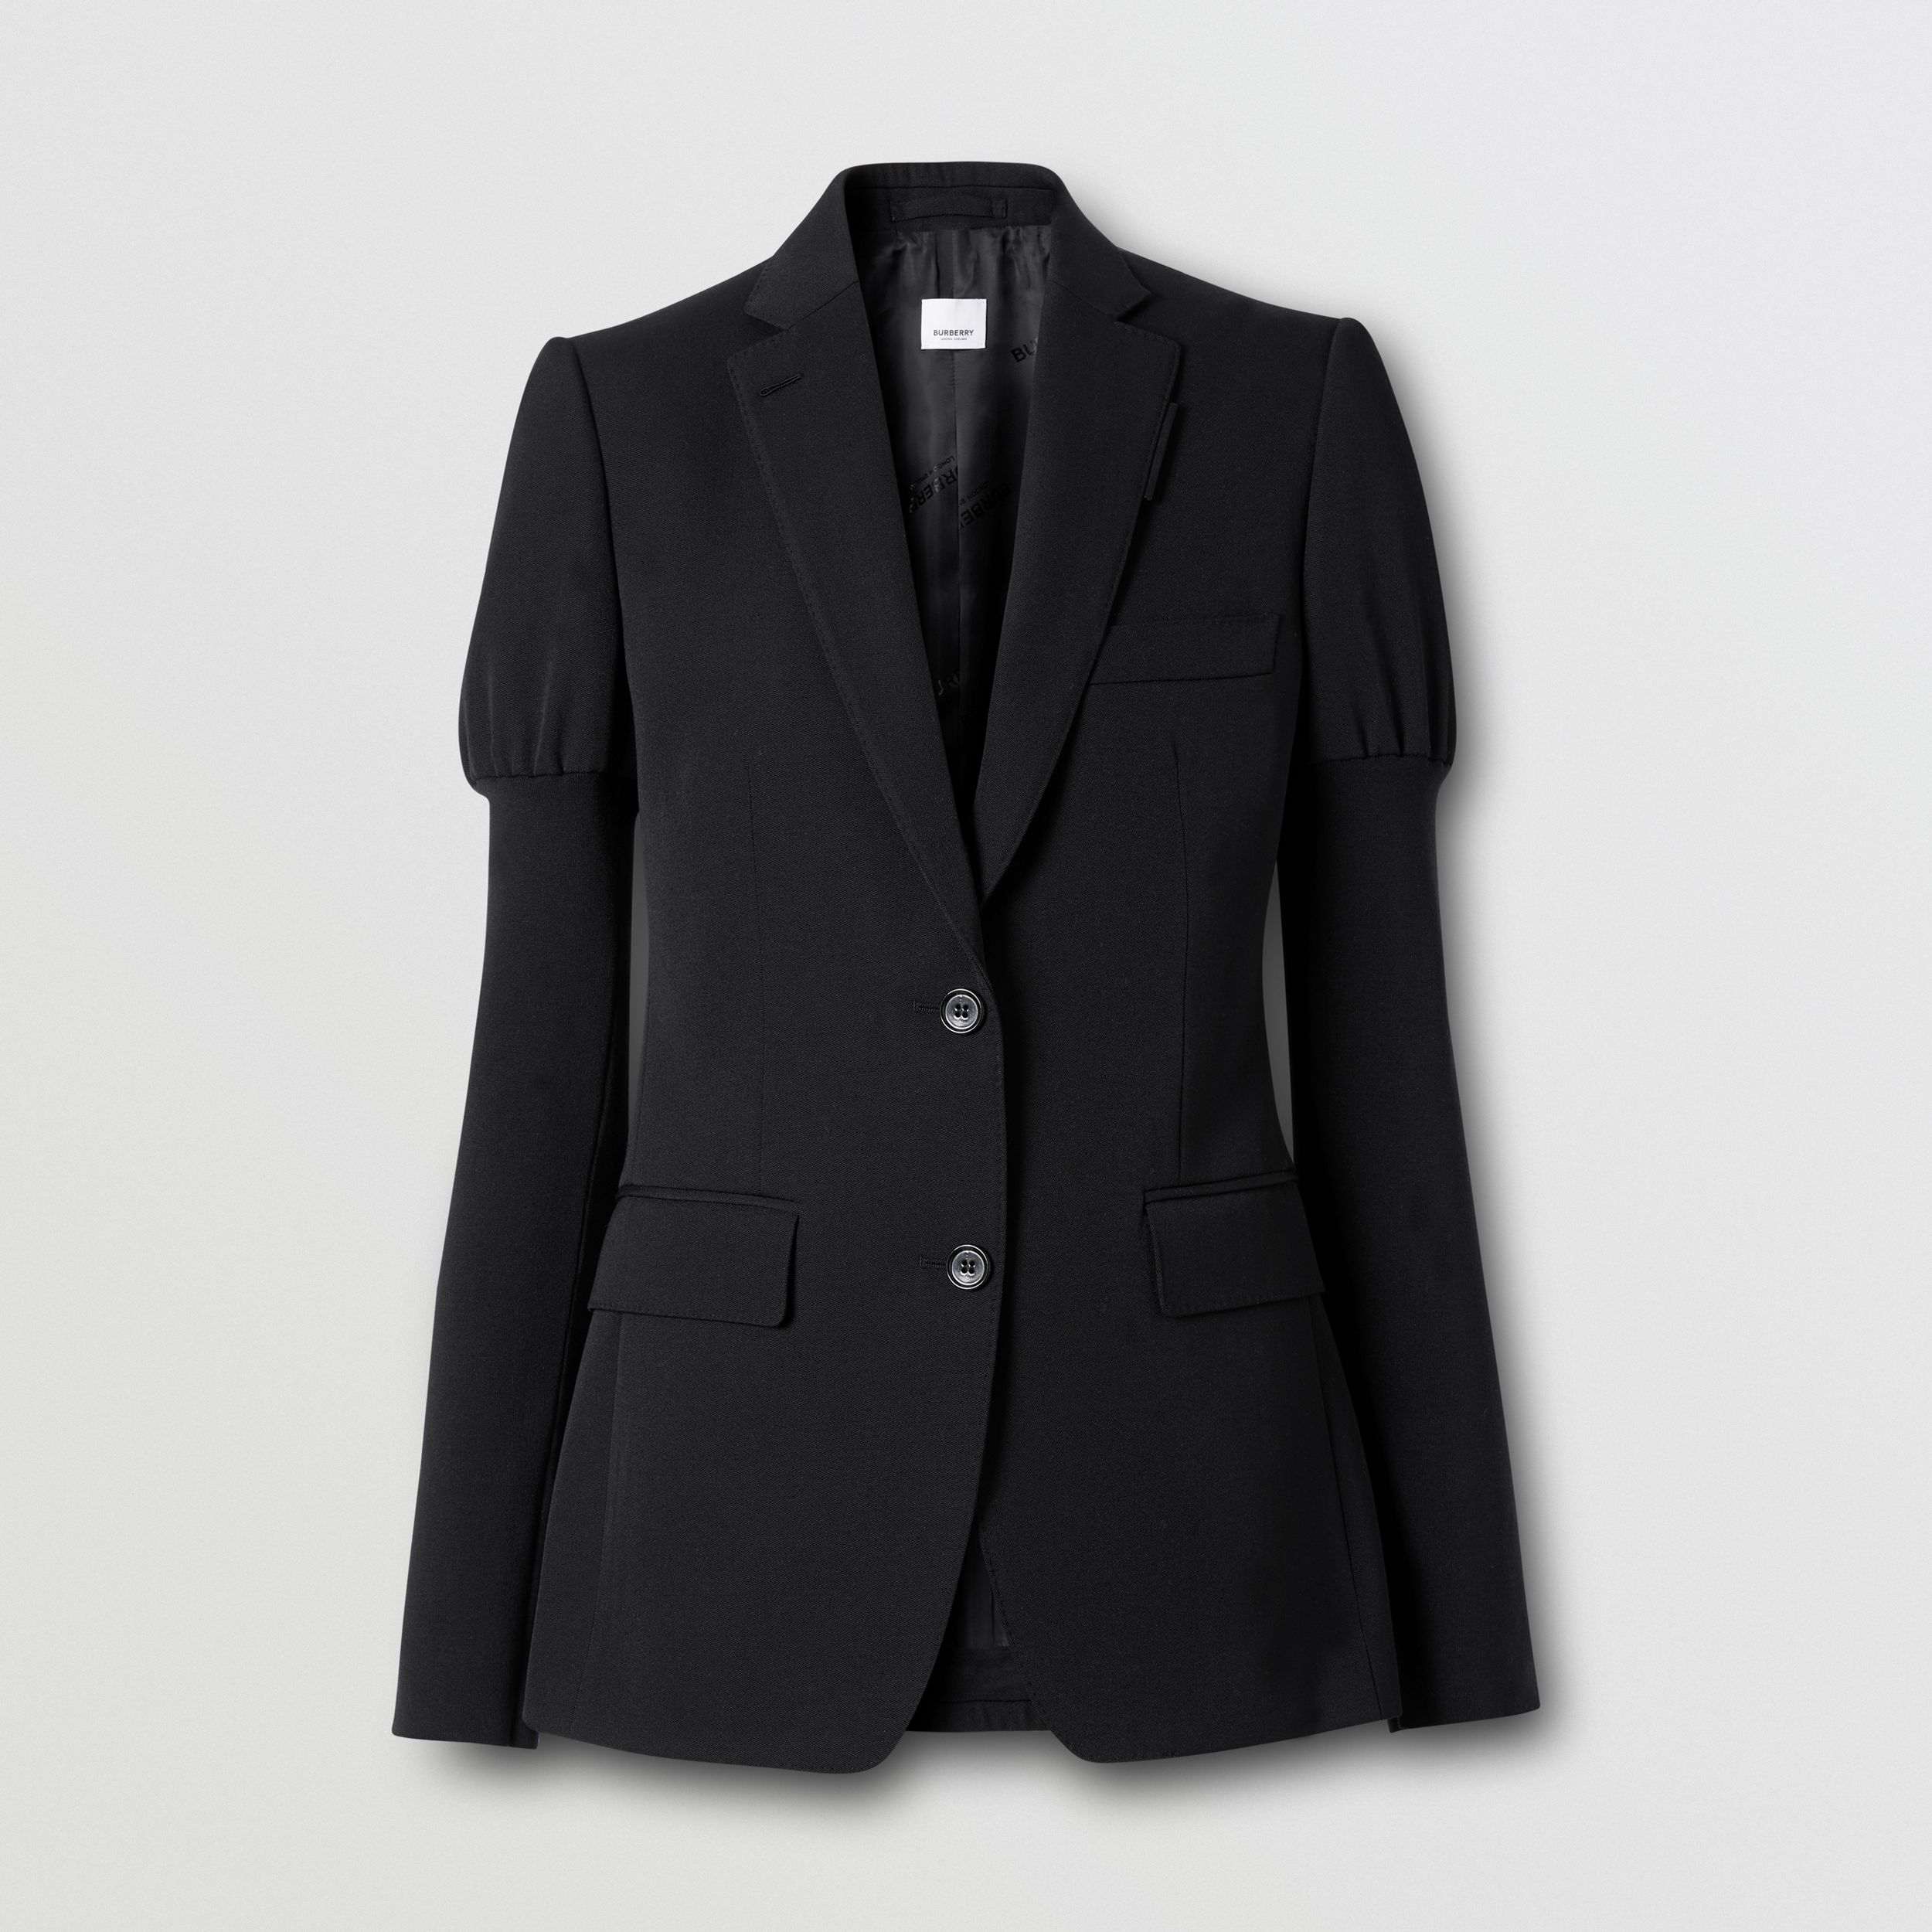 Panelled-sleeve Grain De Poudre Wool Blazer in Black - Women | Burberry - 4